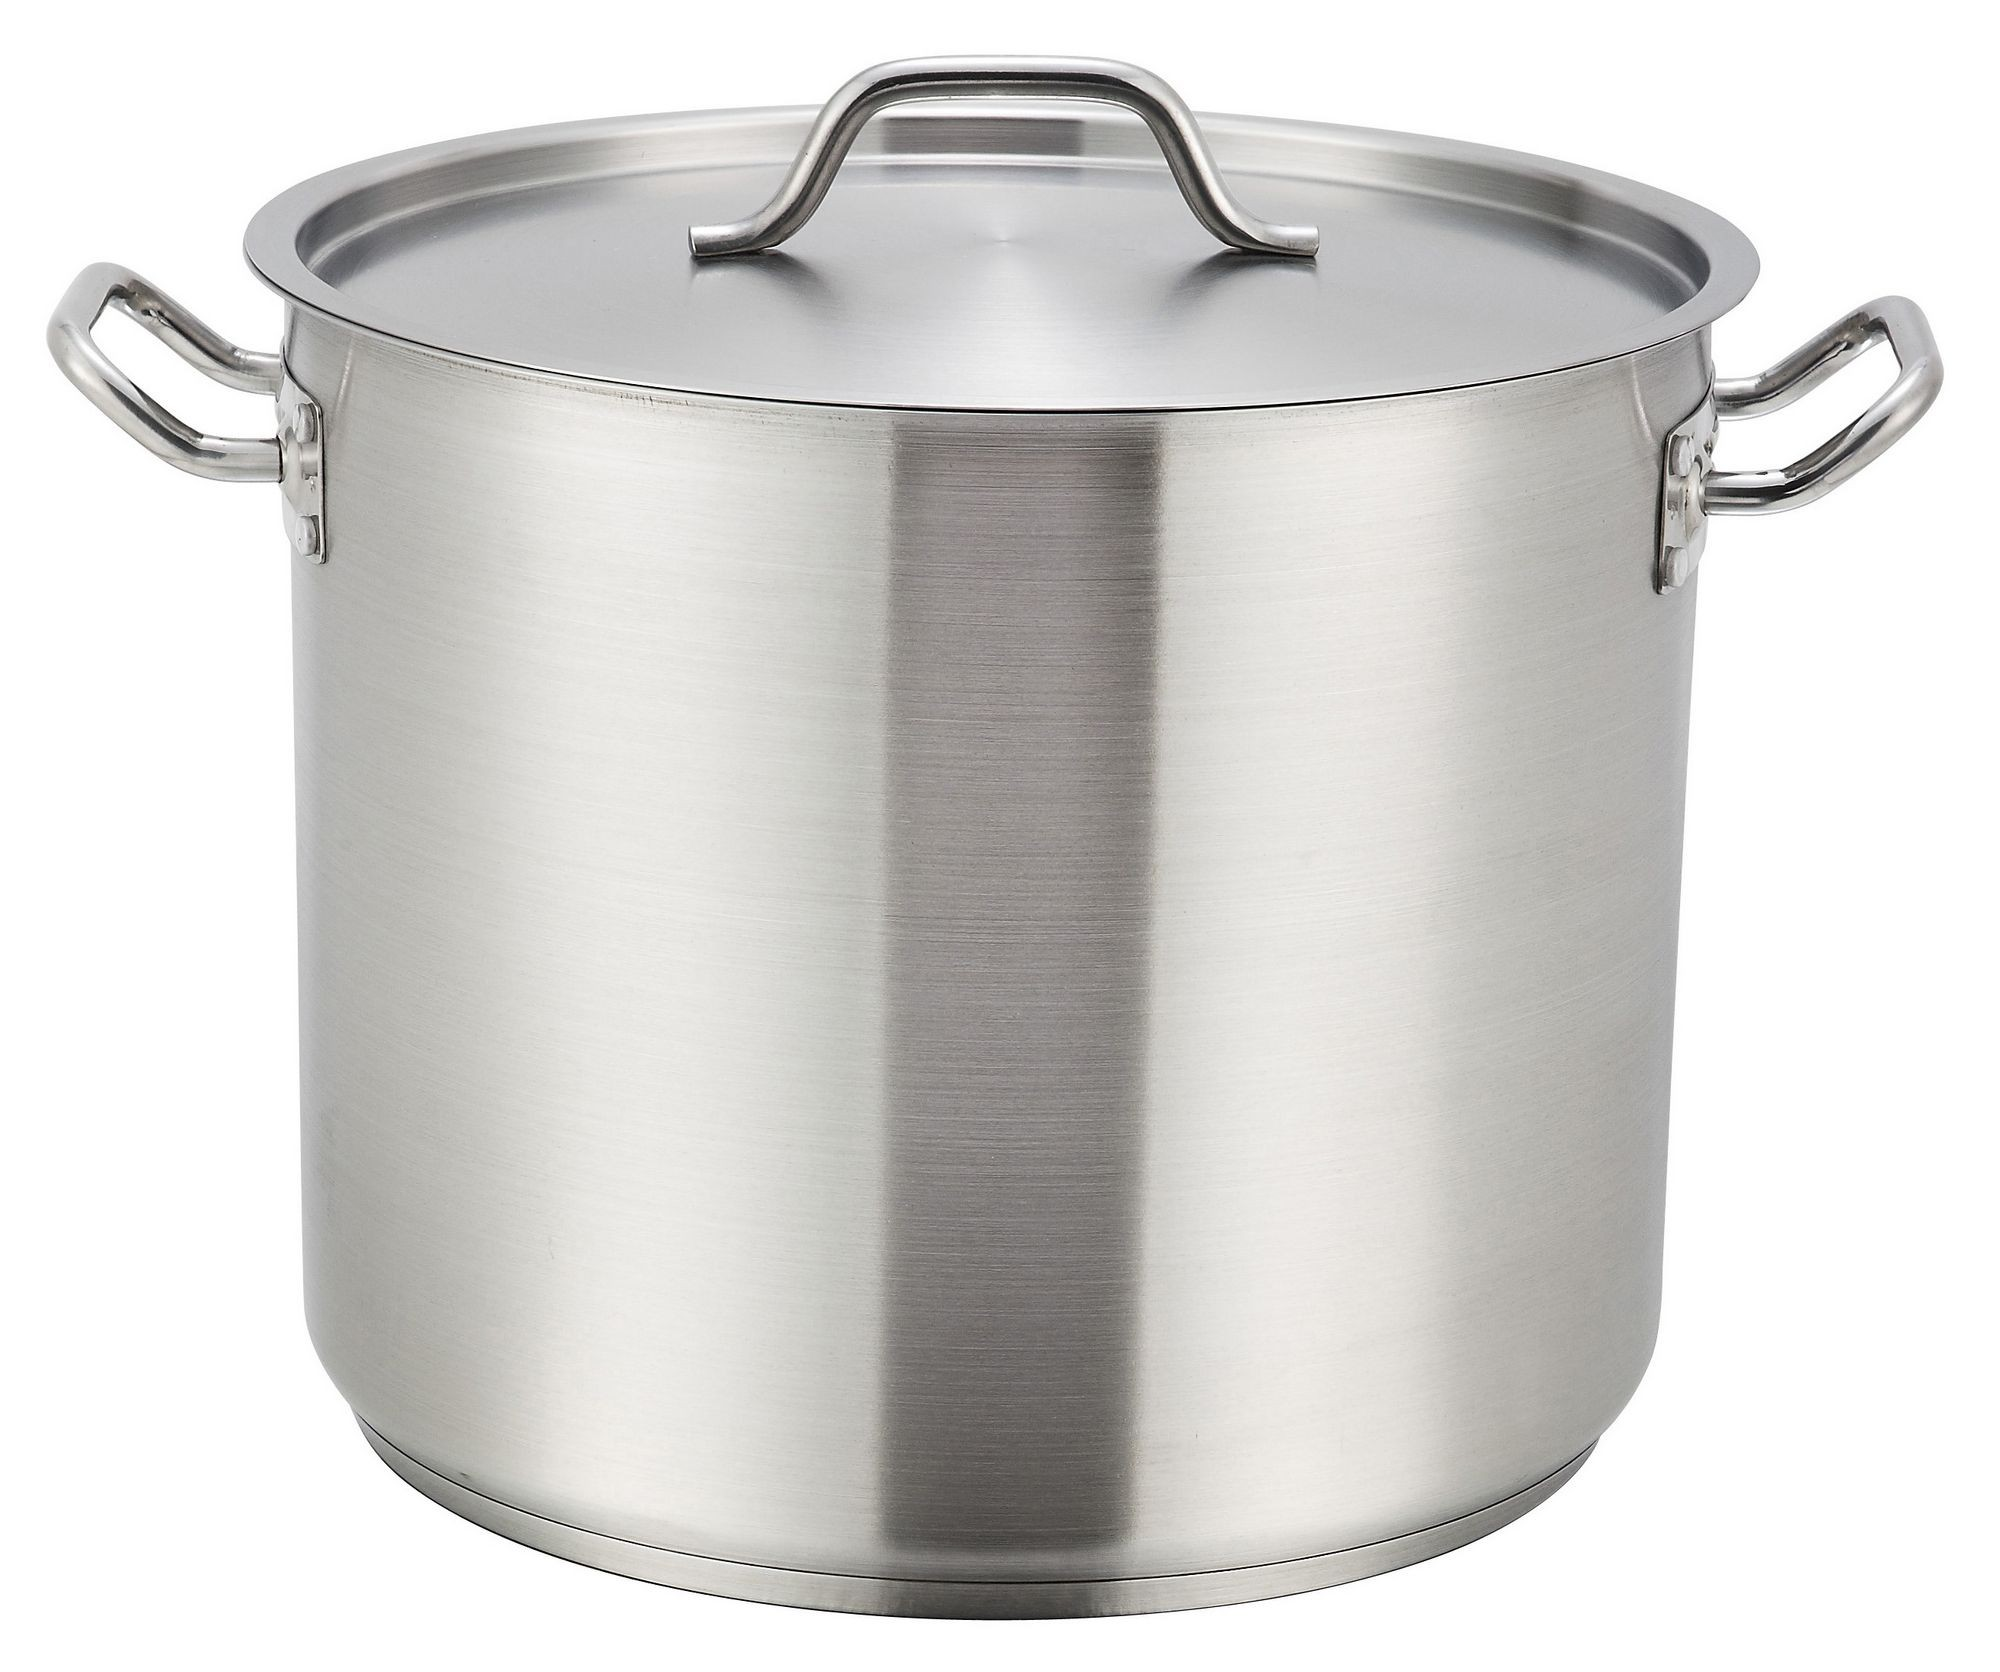 Stainless Steel 20-Qt Stock Pot